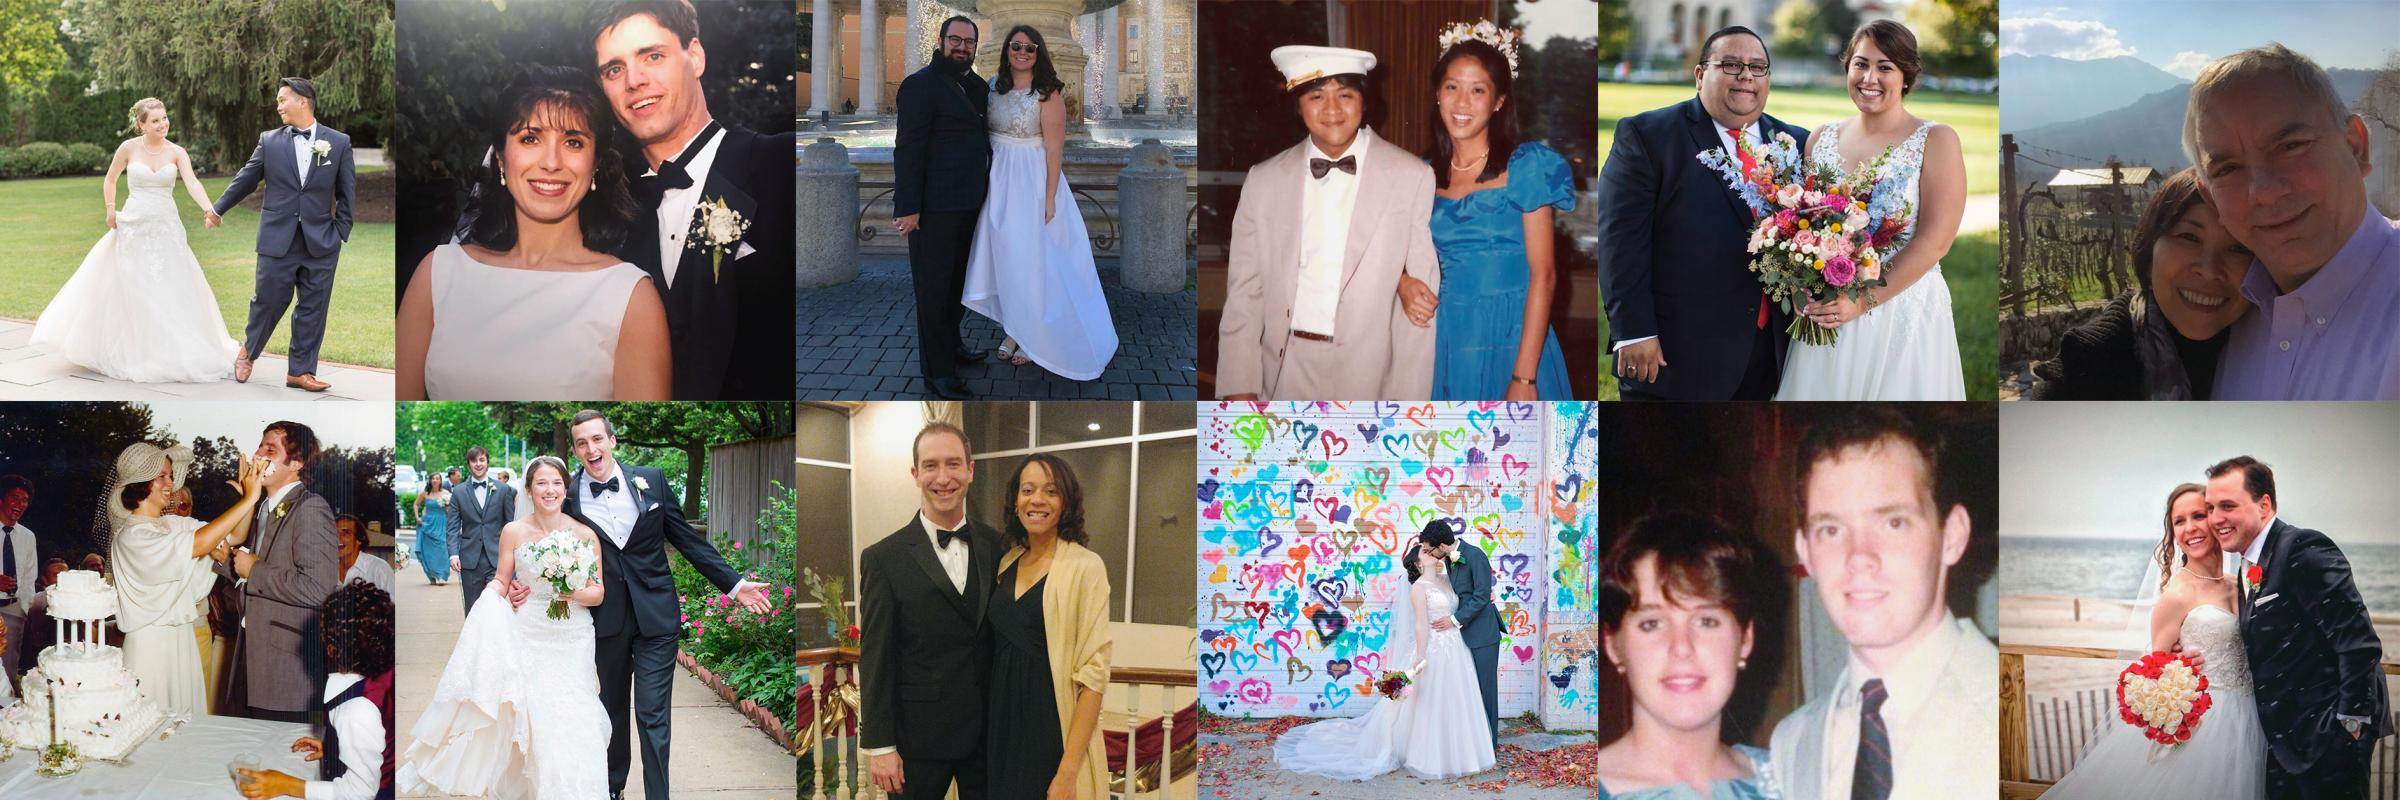 Photo montage of married alumni couples